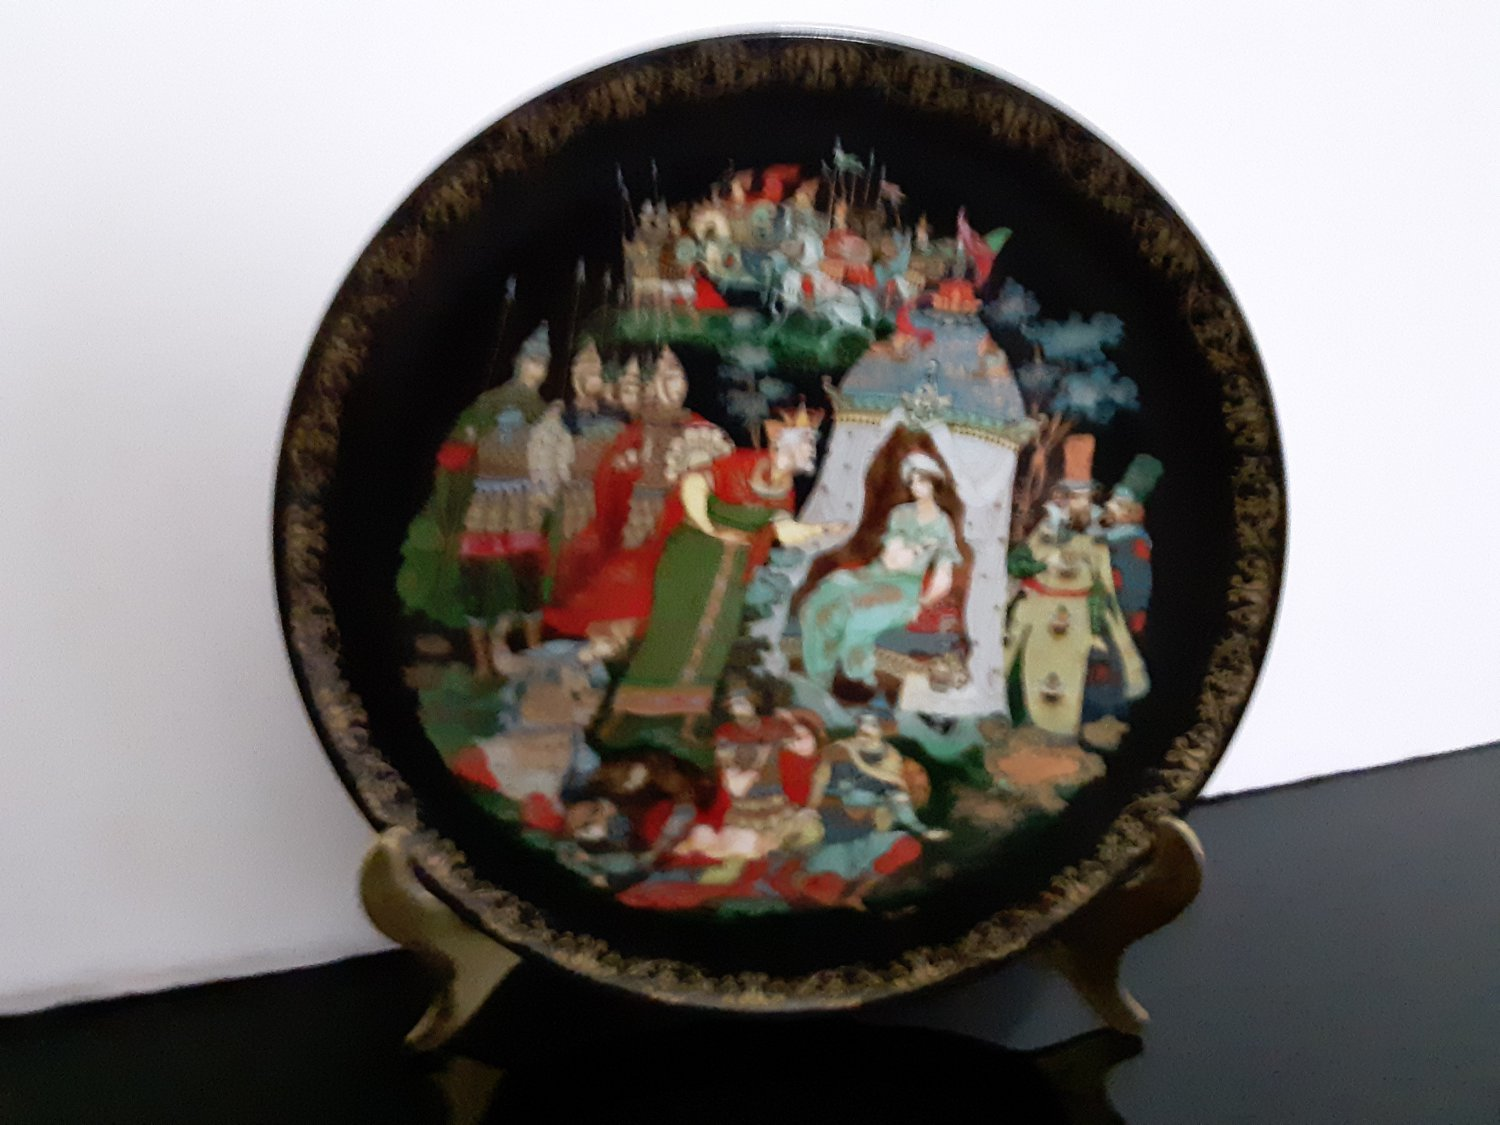 1989 USSR Russian Hand Painted Ceramic Plate